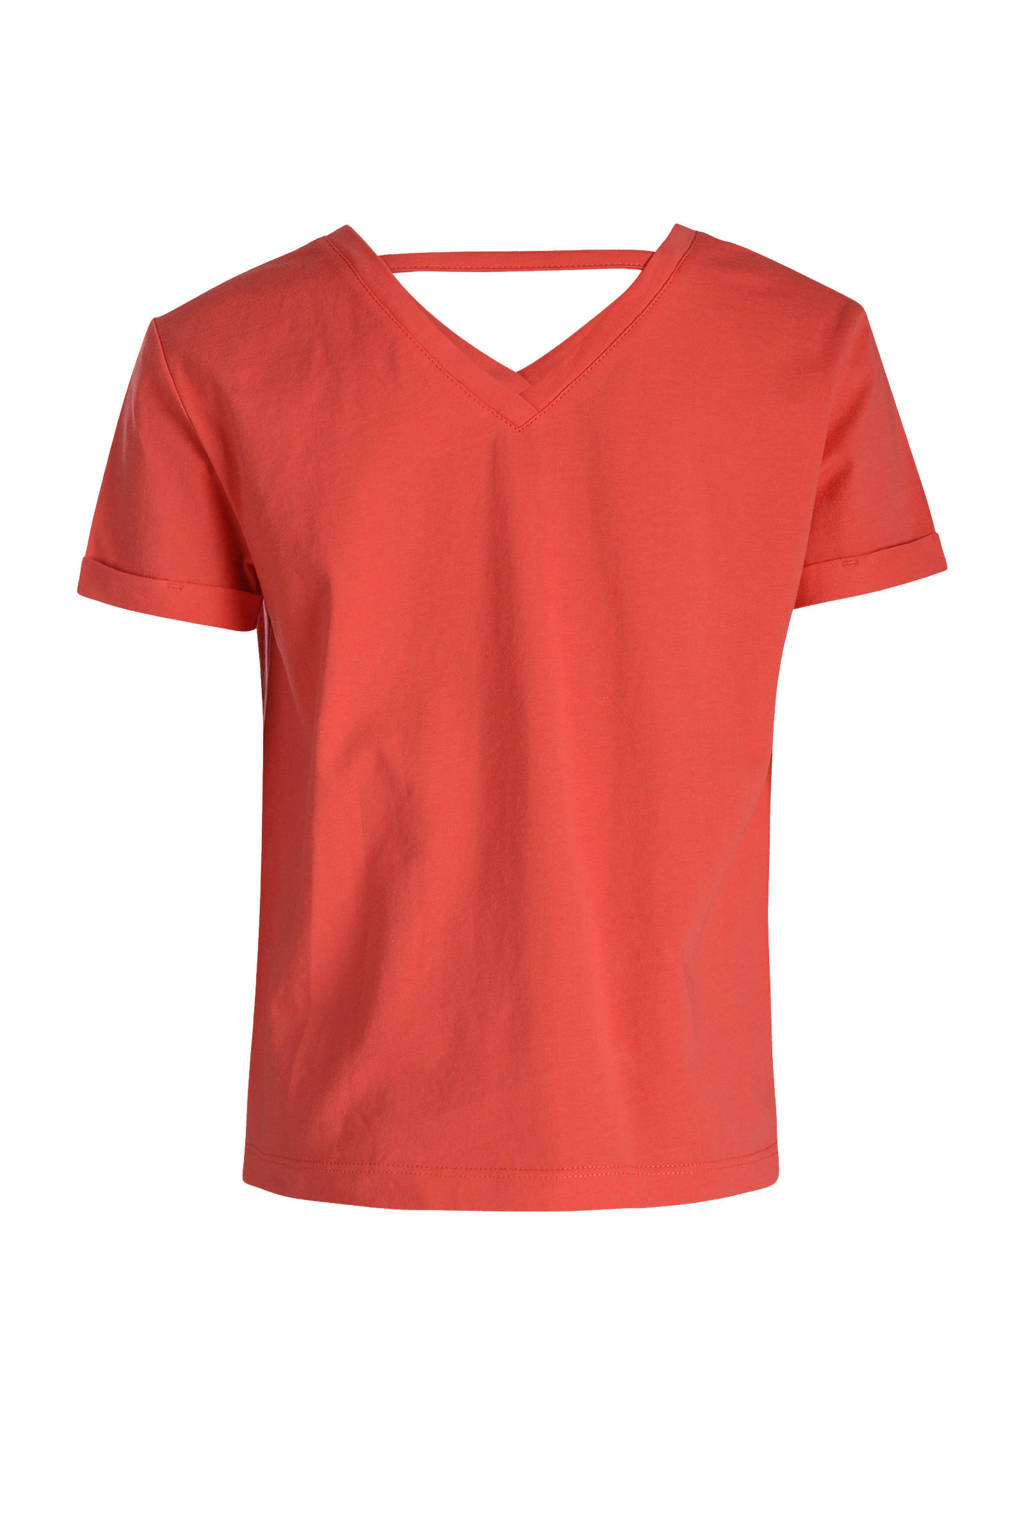 Jill & Mitch by Shoeby T-shirt Nook rood, Rood